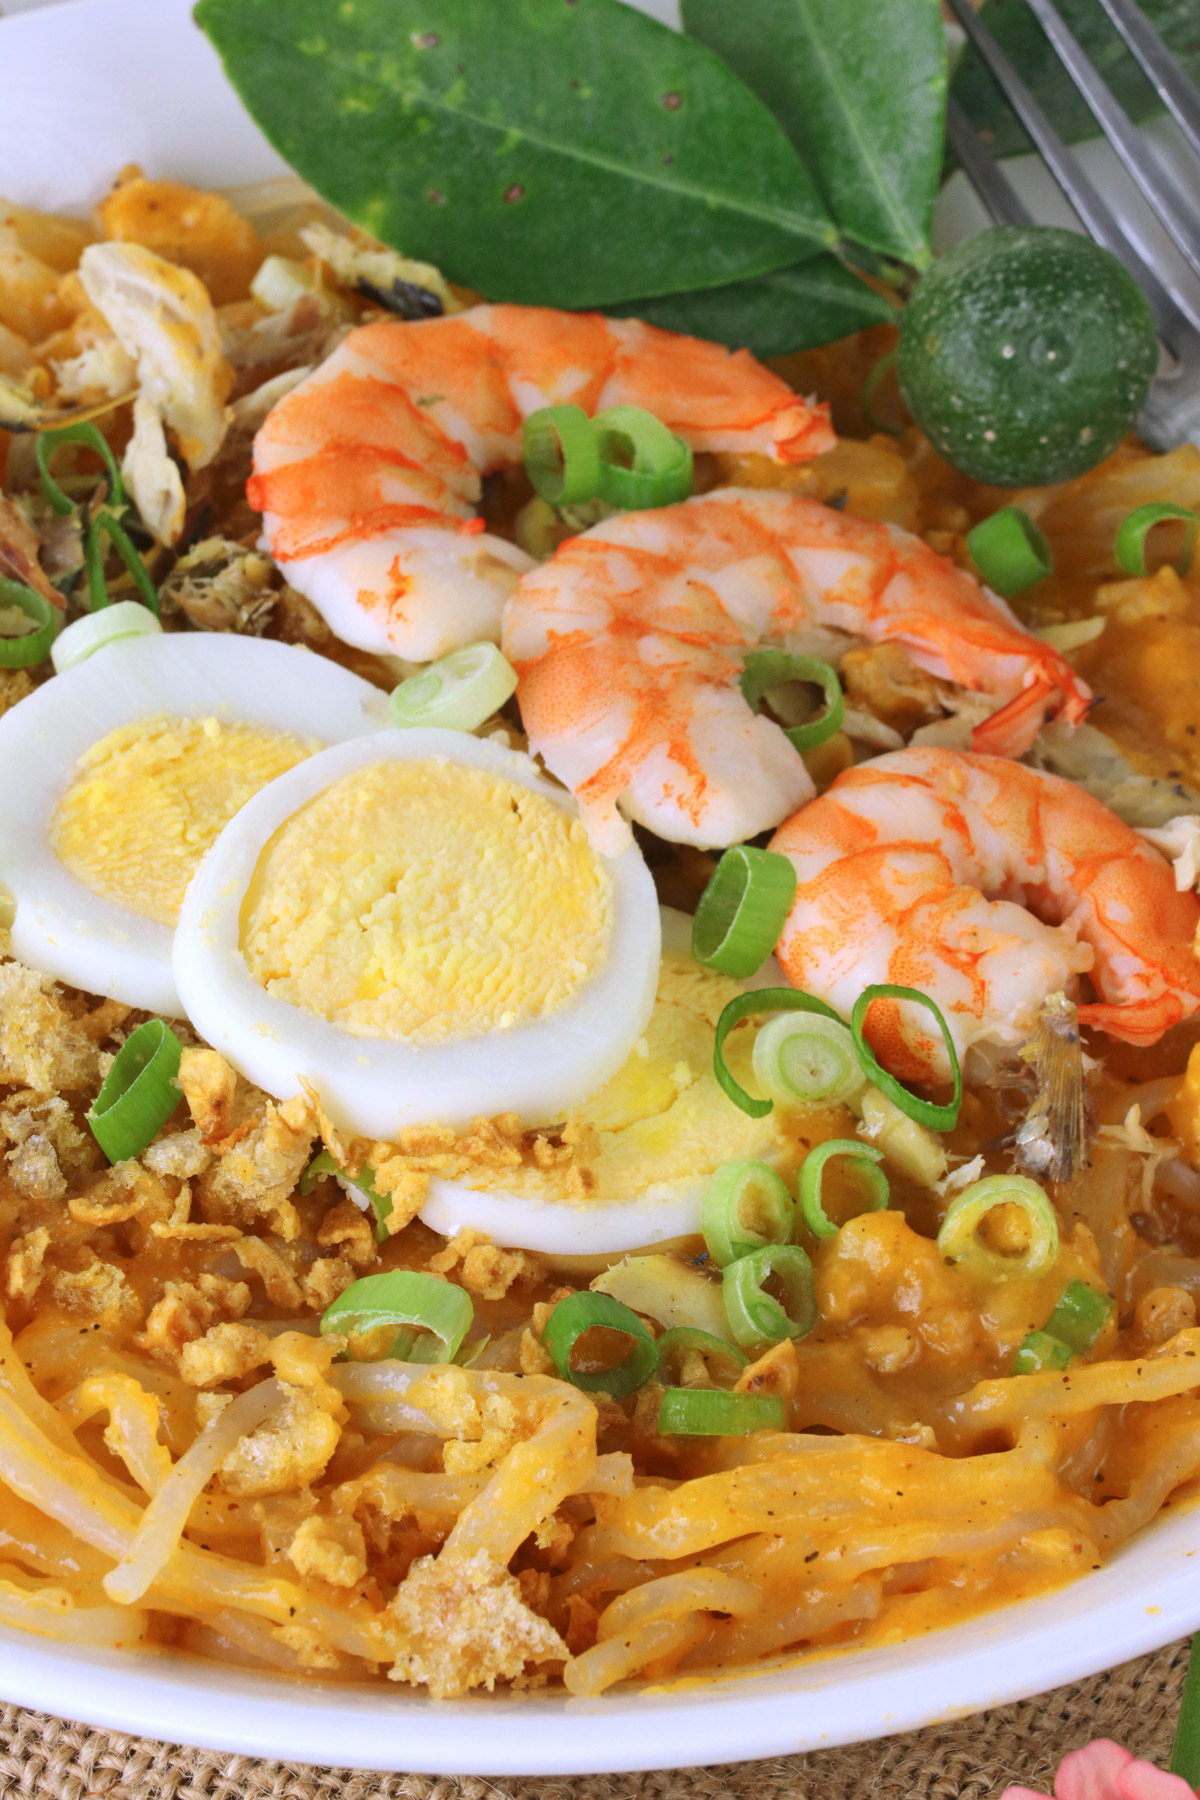 rice noodle with orange savory sauce, eggs, and shrimp